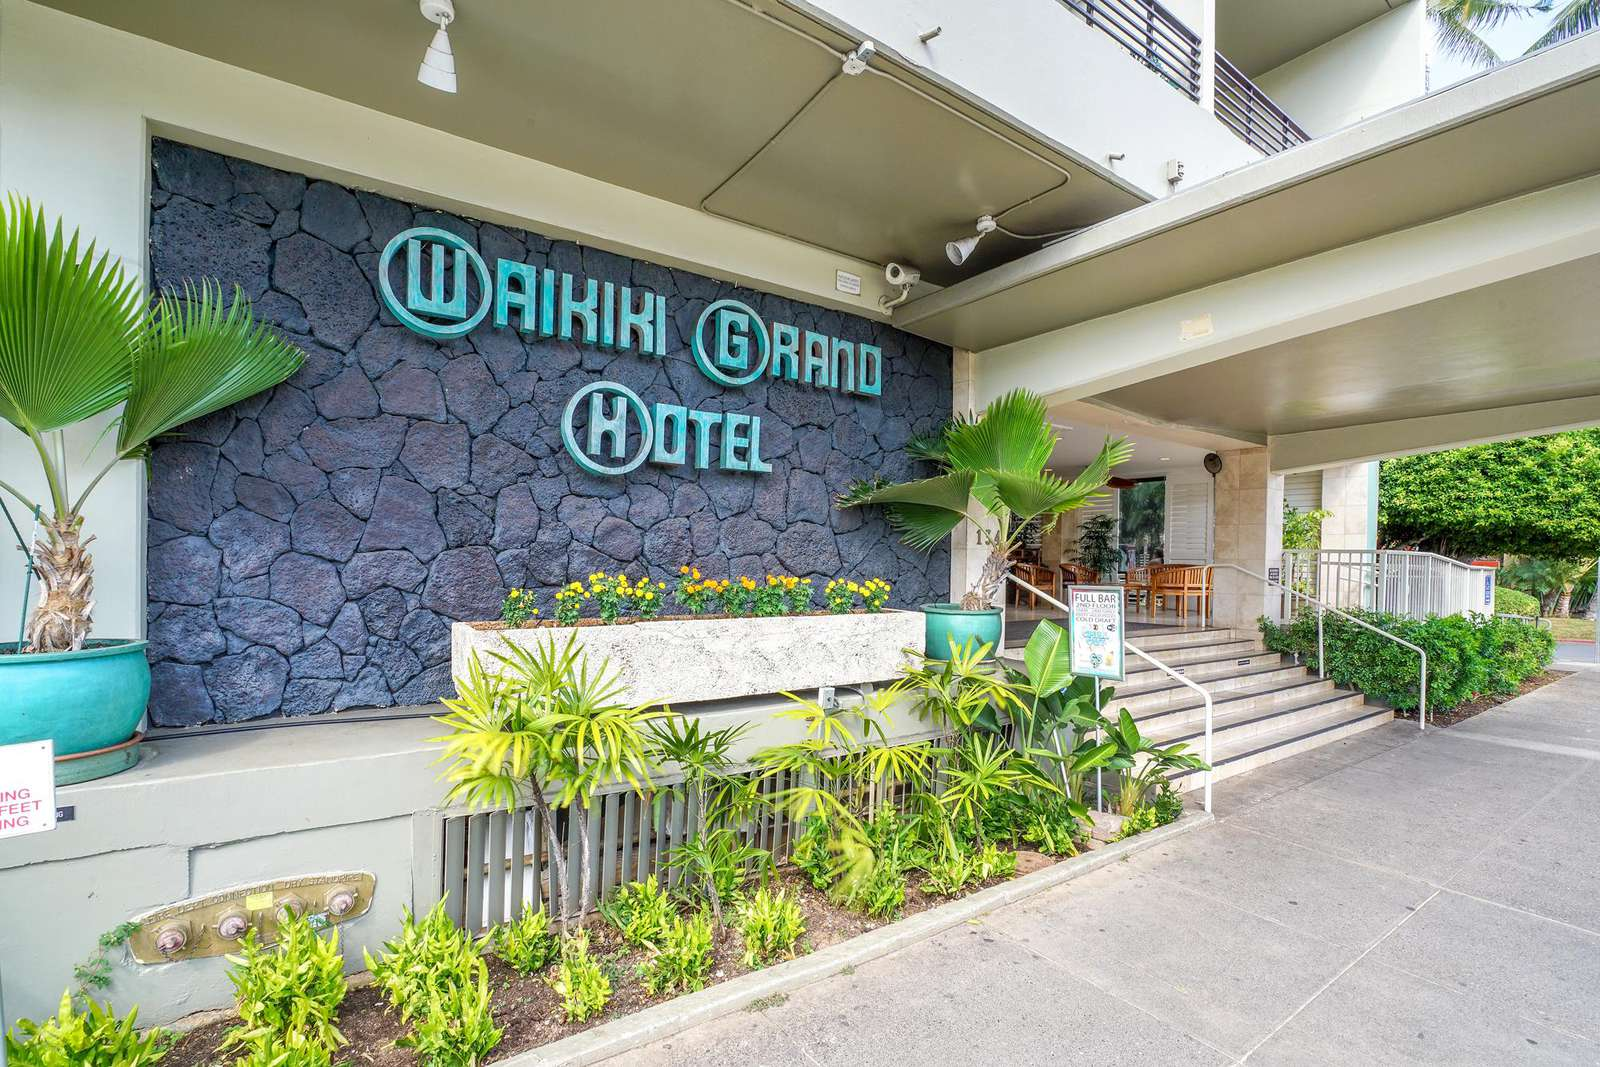 The Waikiki Grand is located just a minute walk to the Ocean